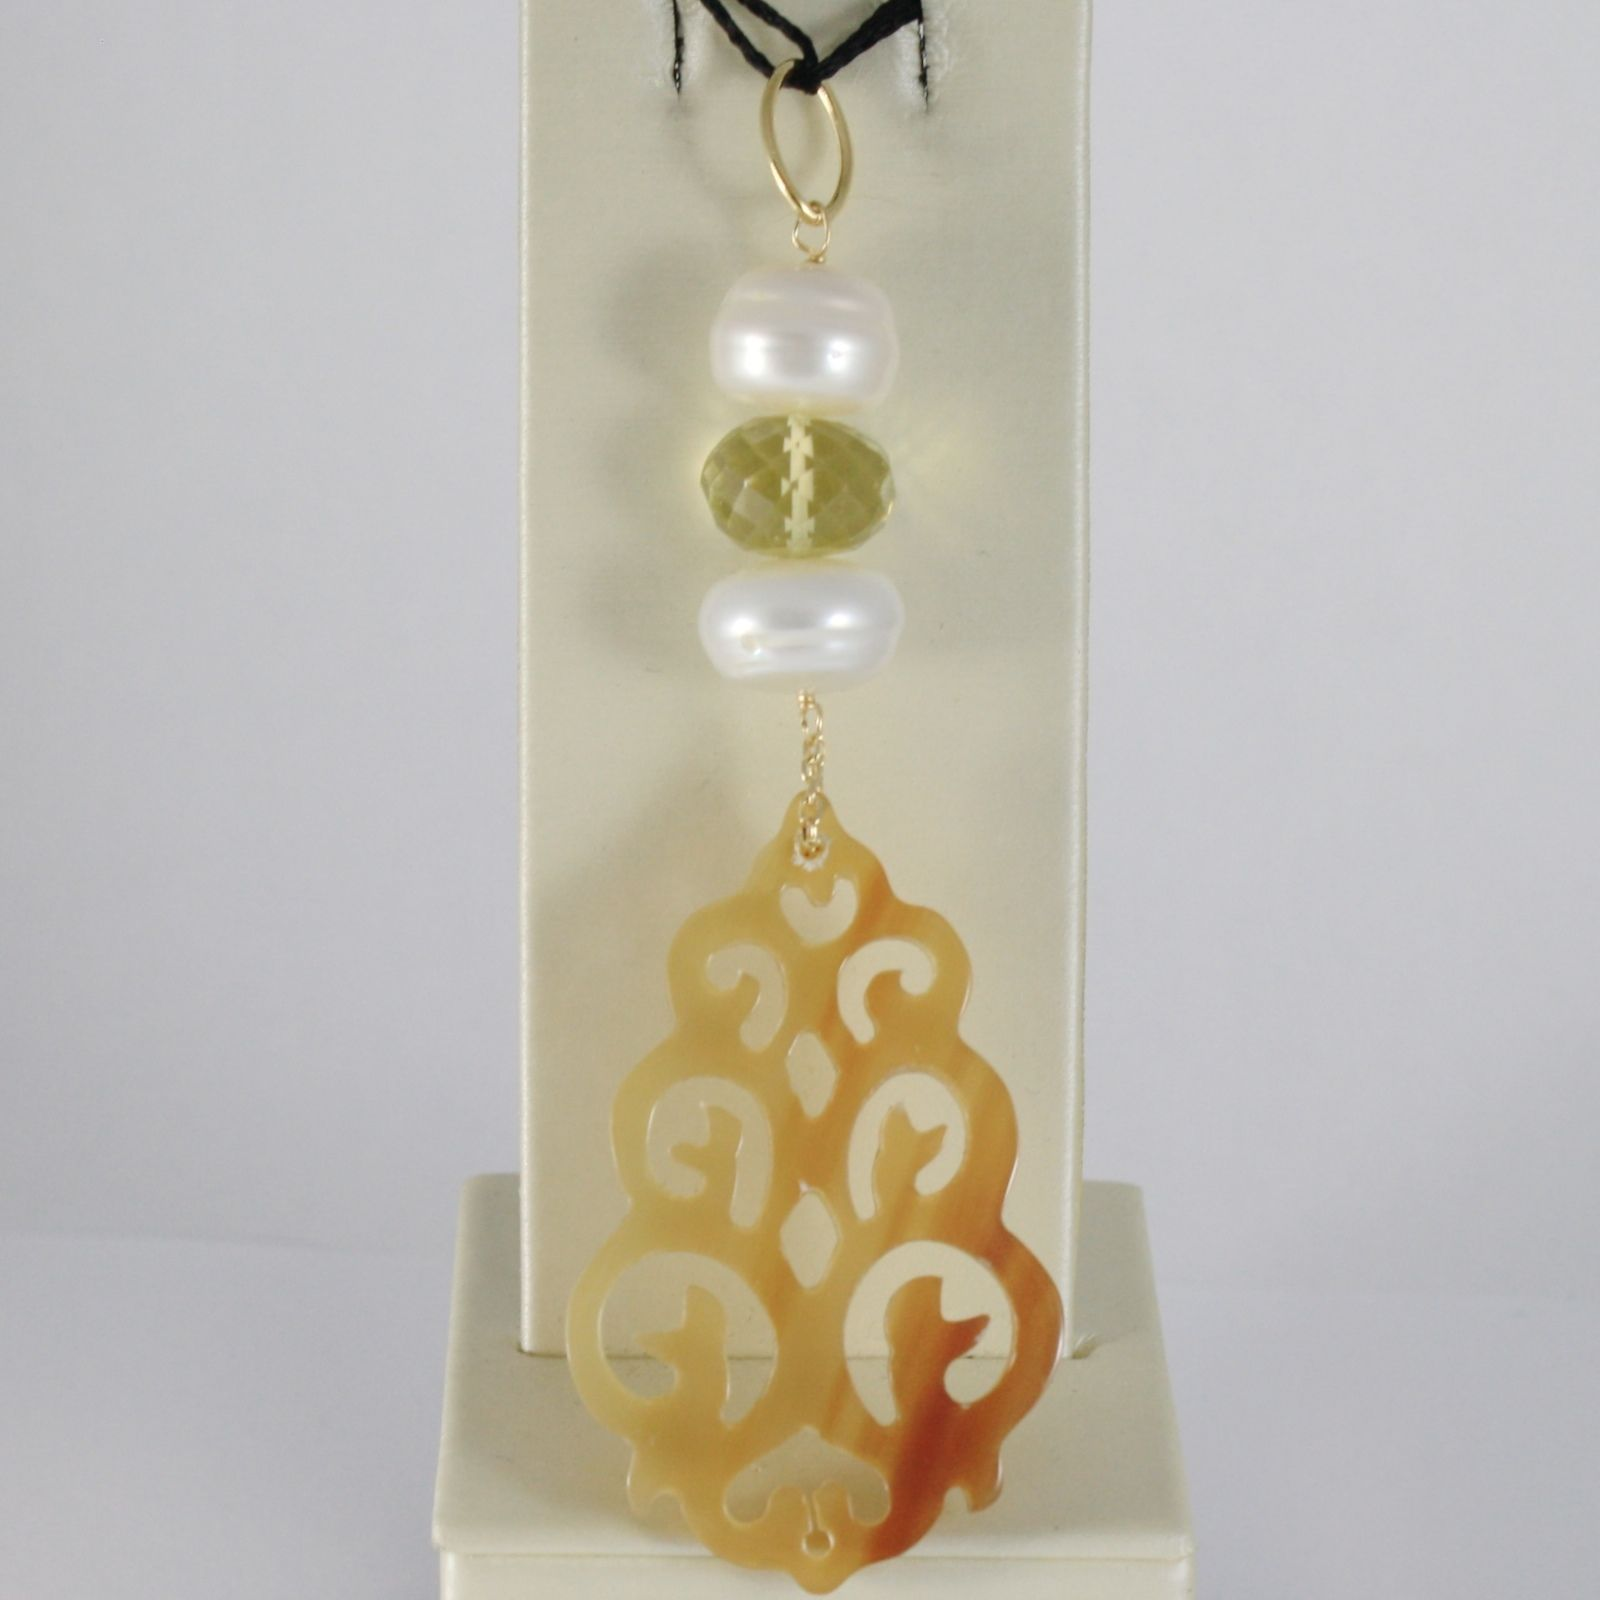 18K YELLOW GOLD BIG LONG PENDANT BIG WORKED HORN, LEMON QUARTZ, PEARL, 8.5 CM